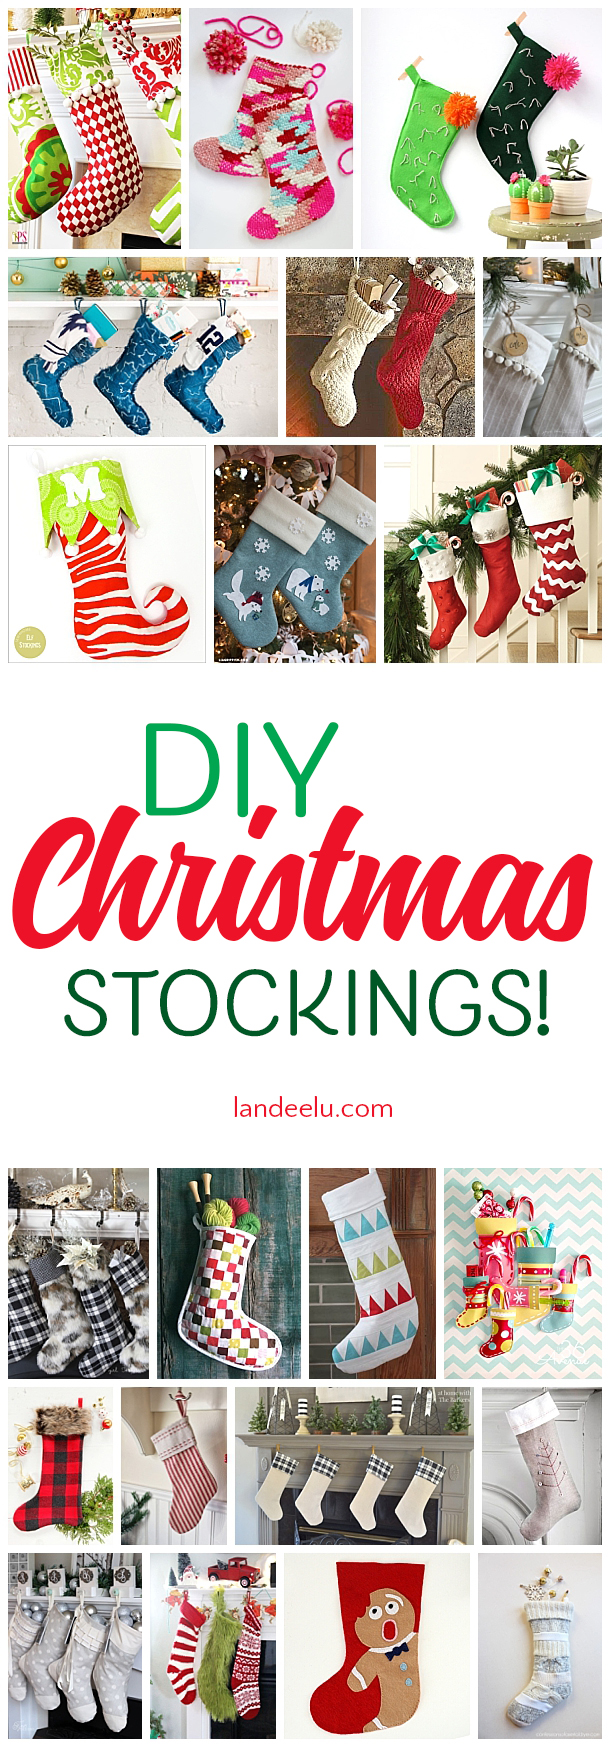 Darling Christmas stockings for you to make yourself... that makes them extra special!